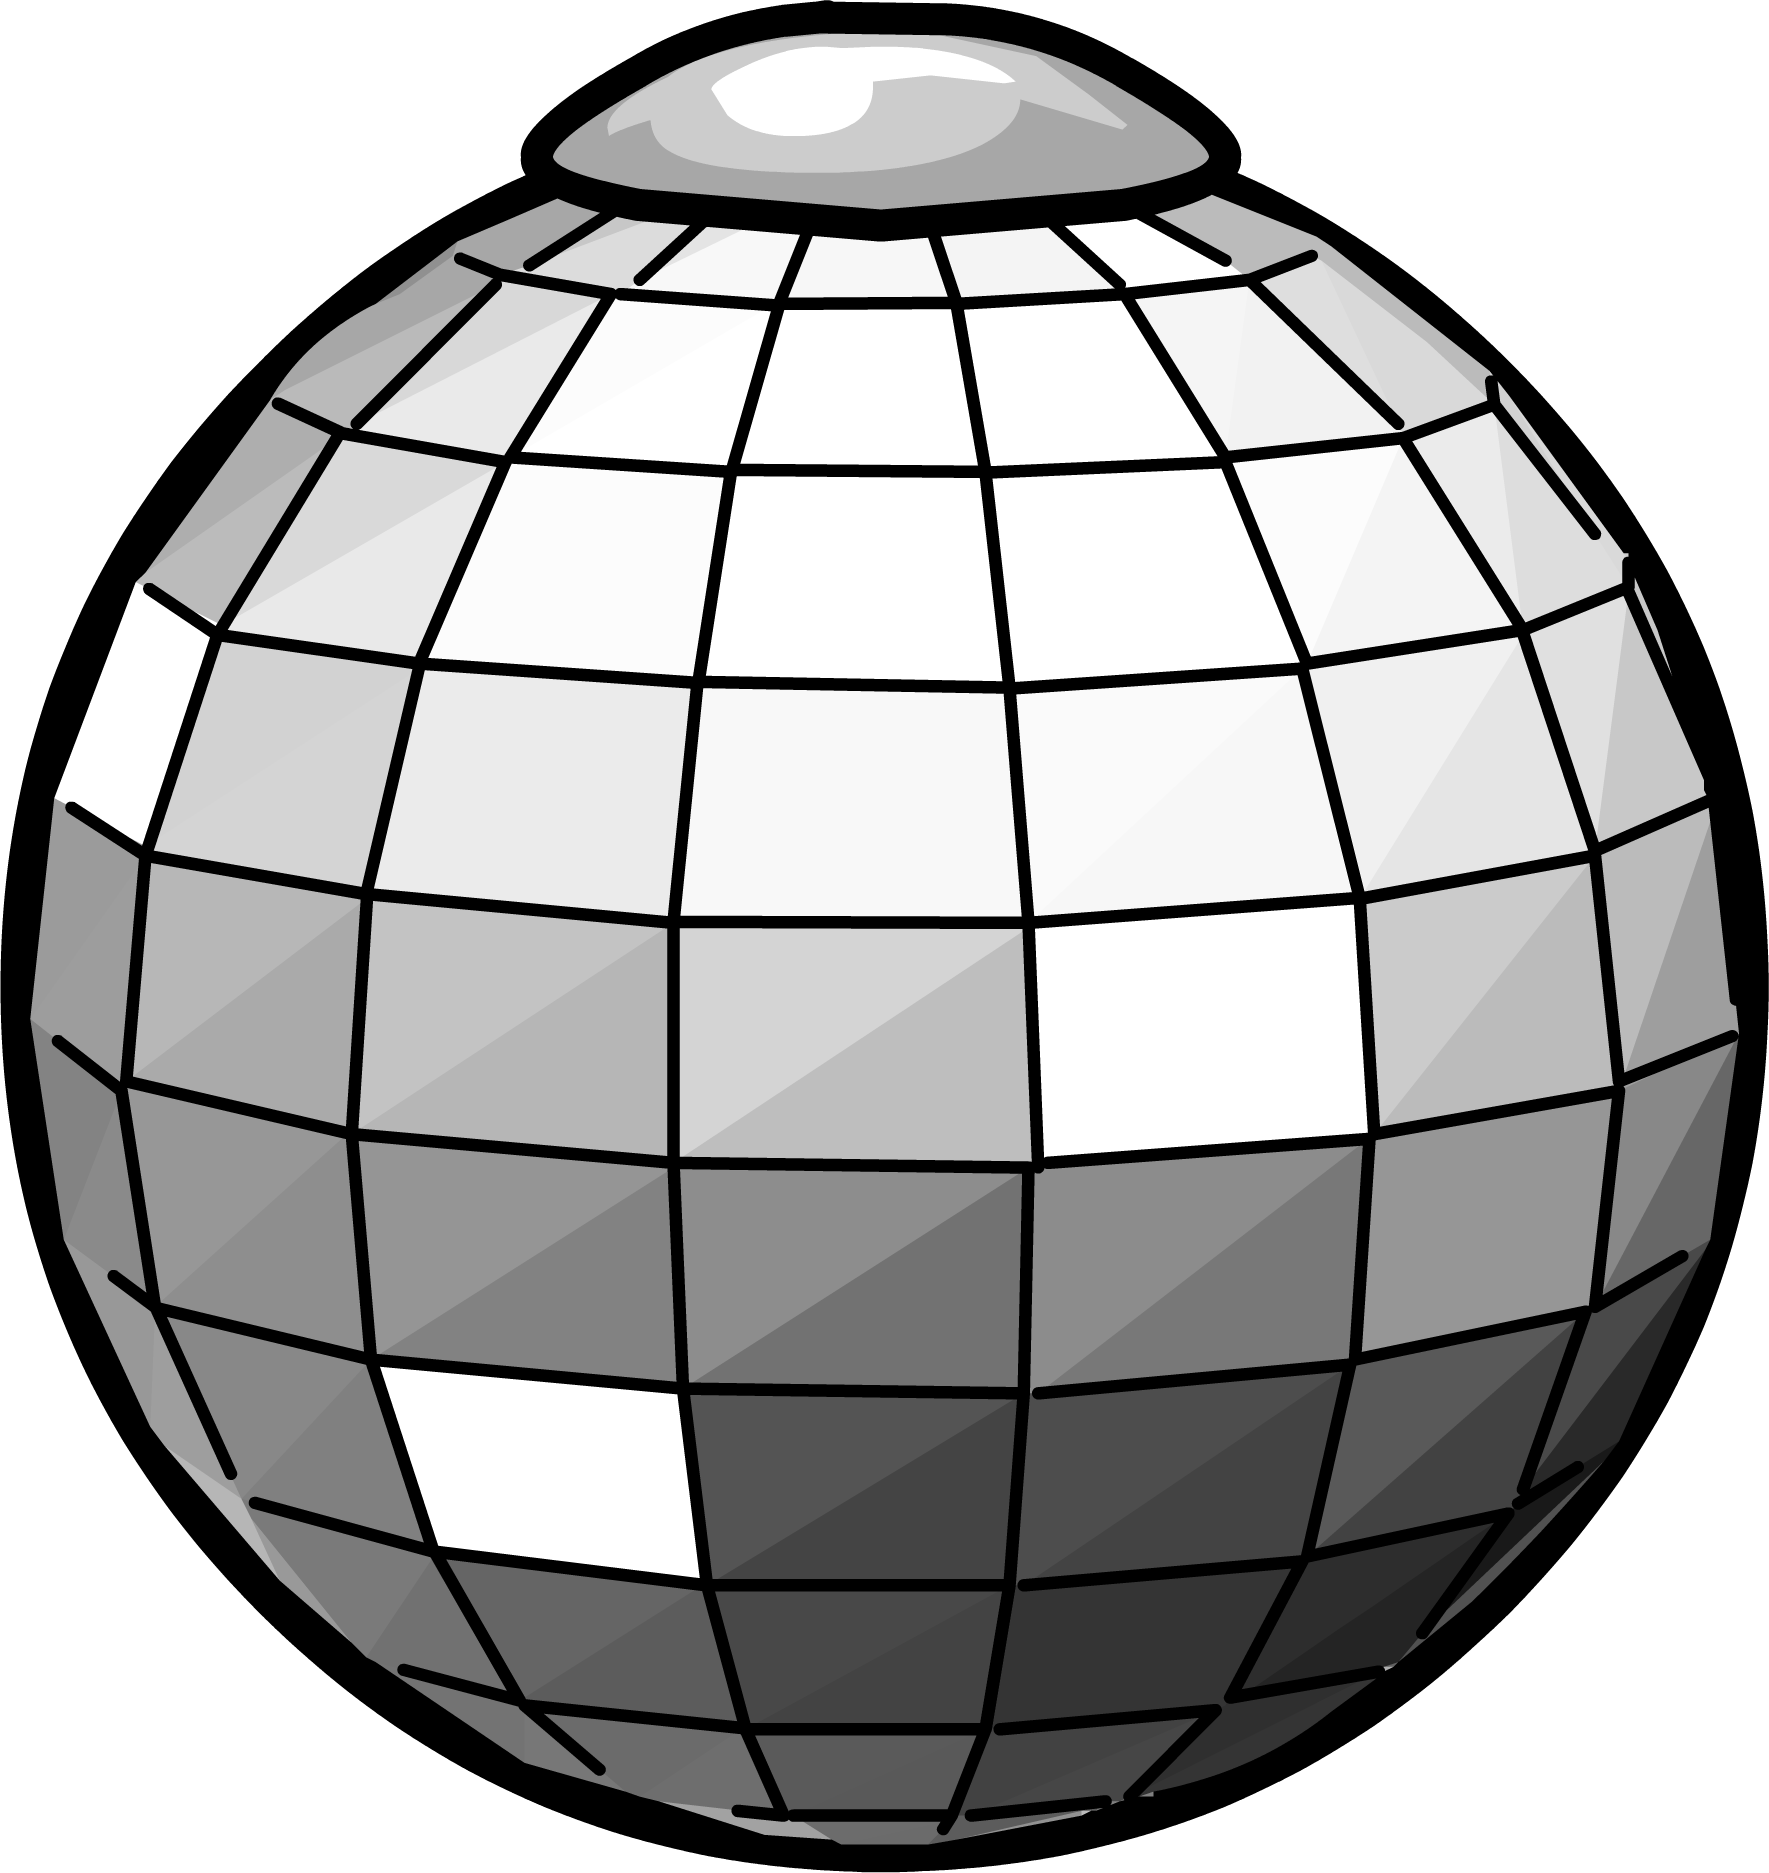 Image ball png penguin. Club clipart disco club